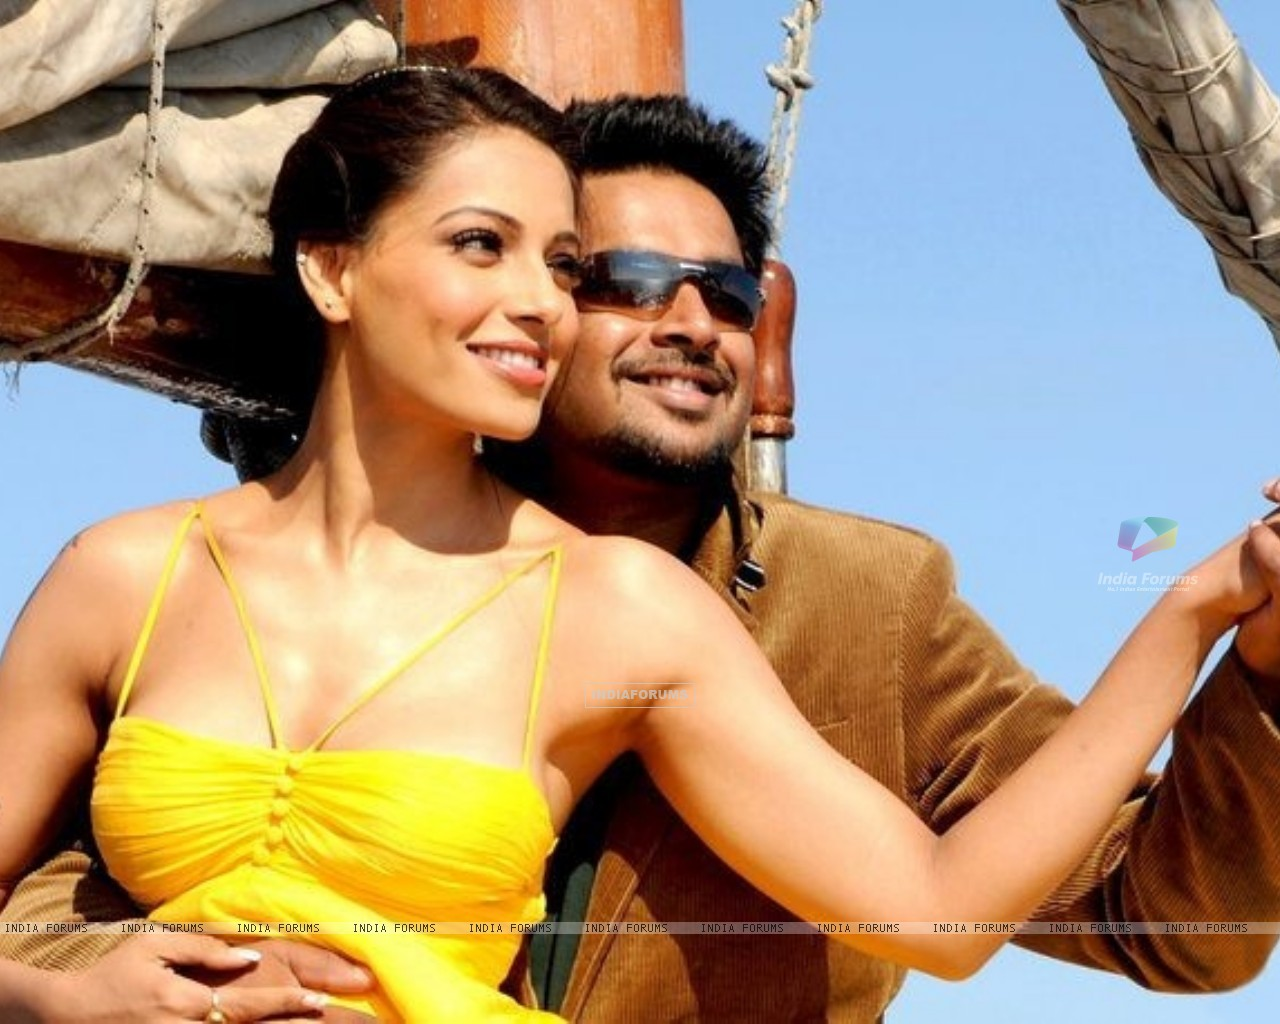 R. Madhavan and Bipasha in the movie Jodi Breakers (178577) size:1280x1024